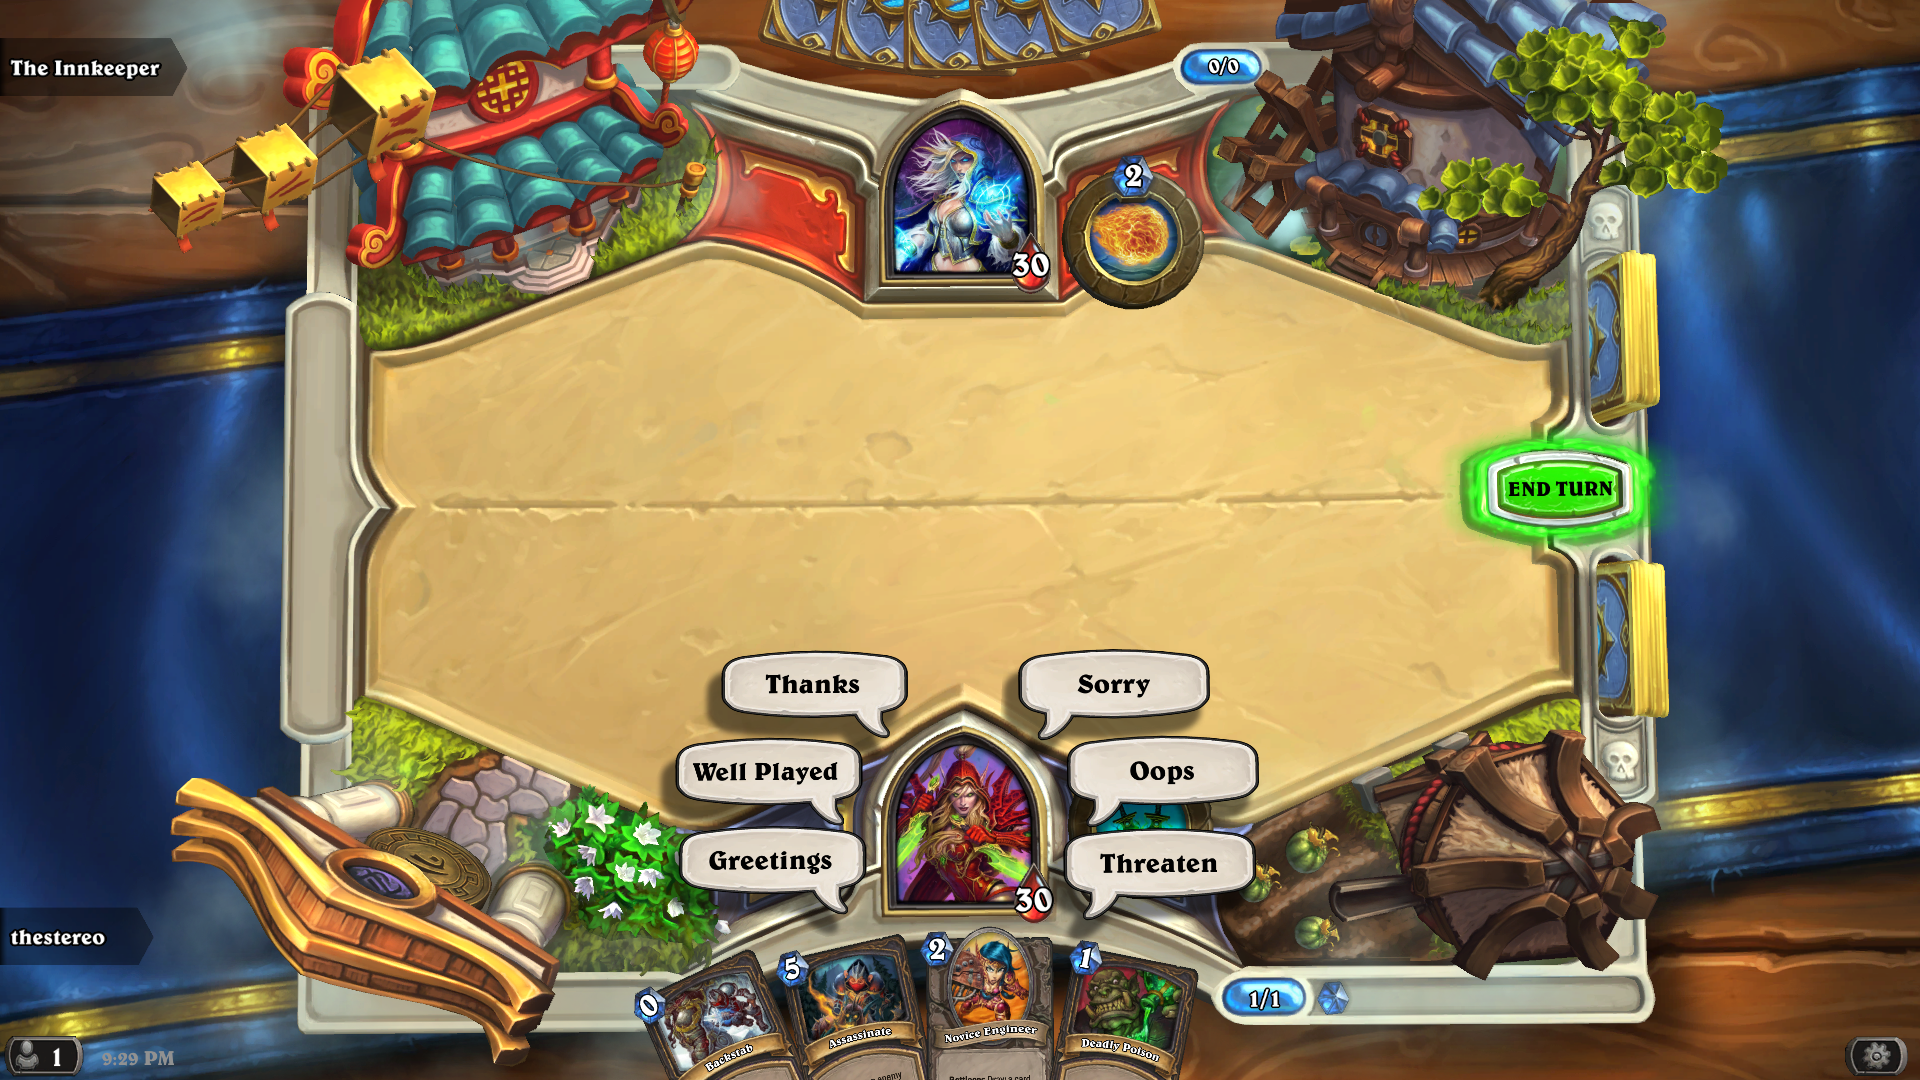 Hearthstone_Screenshot_6.8.2014.21.29.51